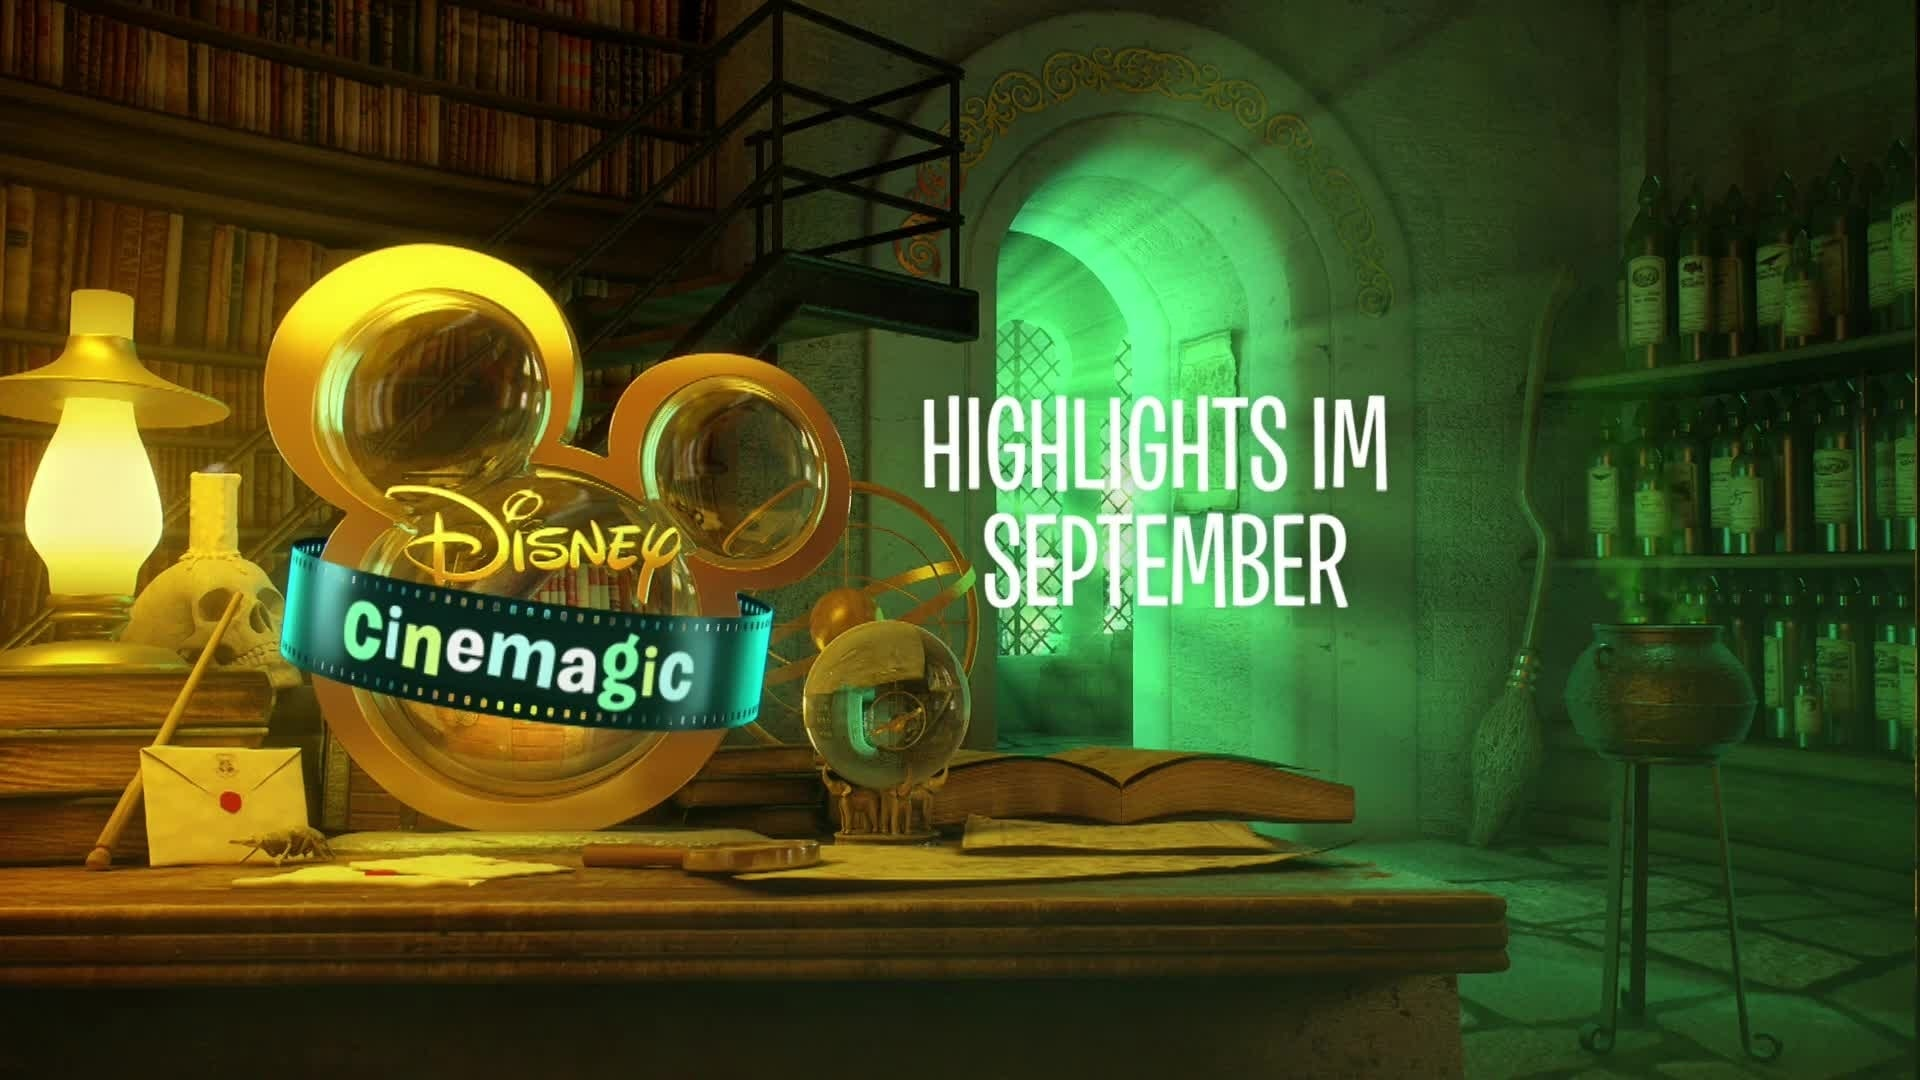 Disney Cinemagic - Die Highlights im September 2017